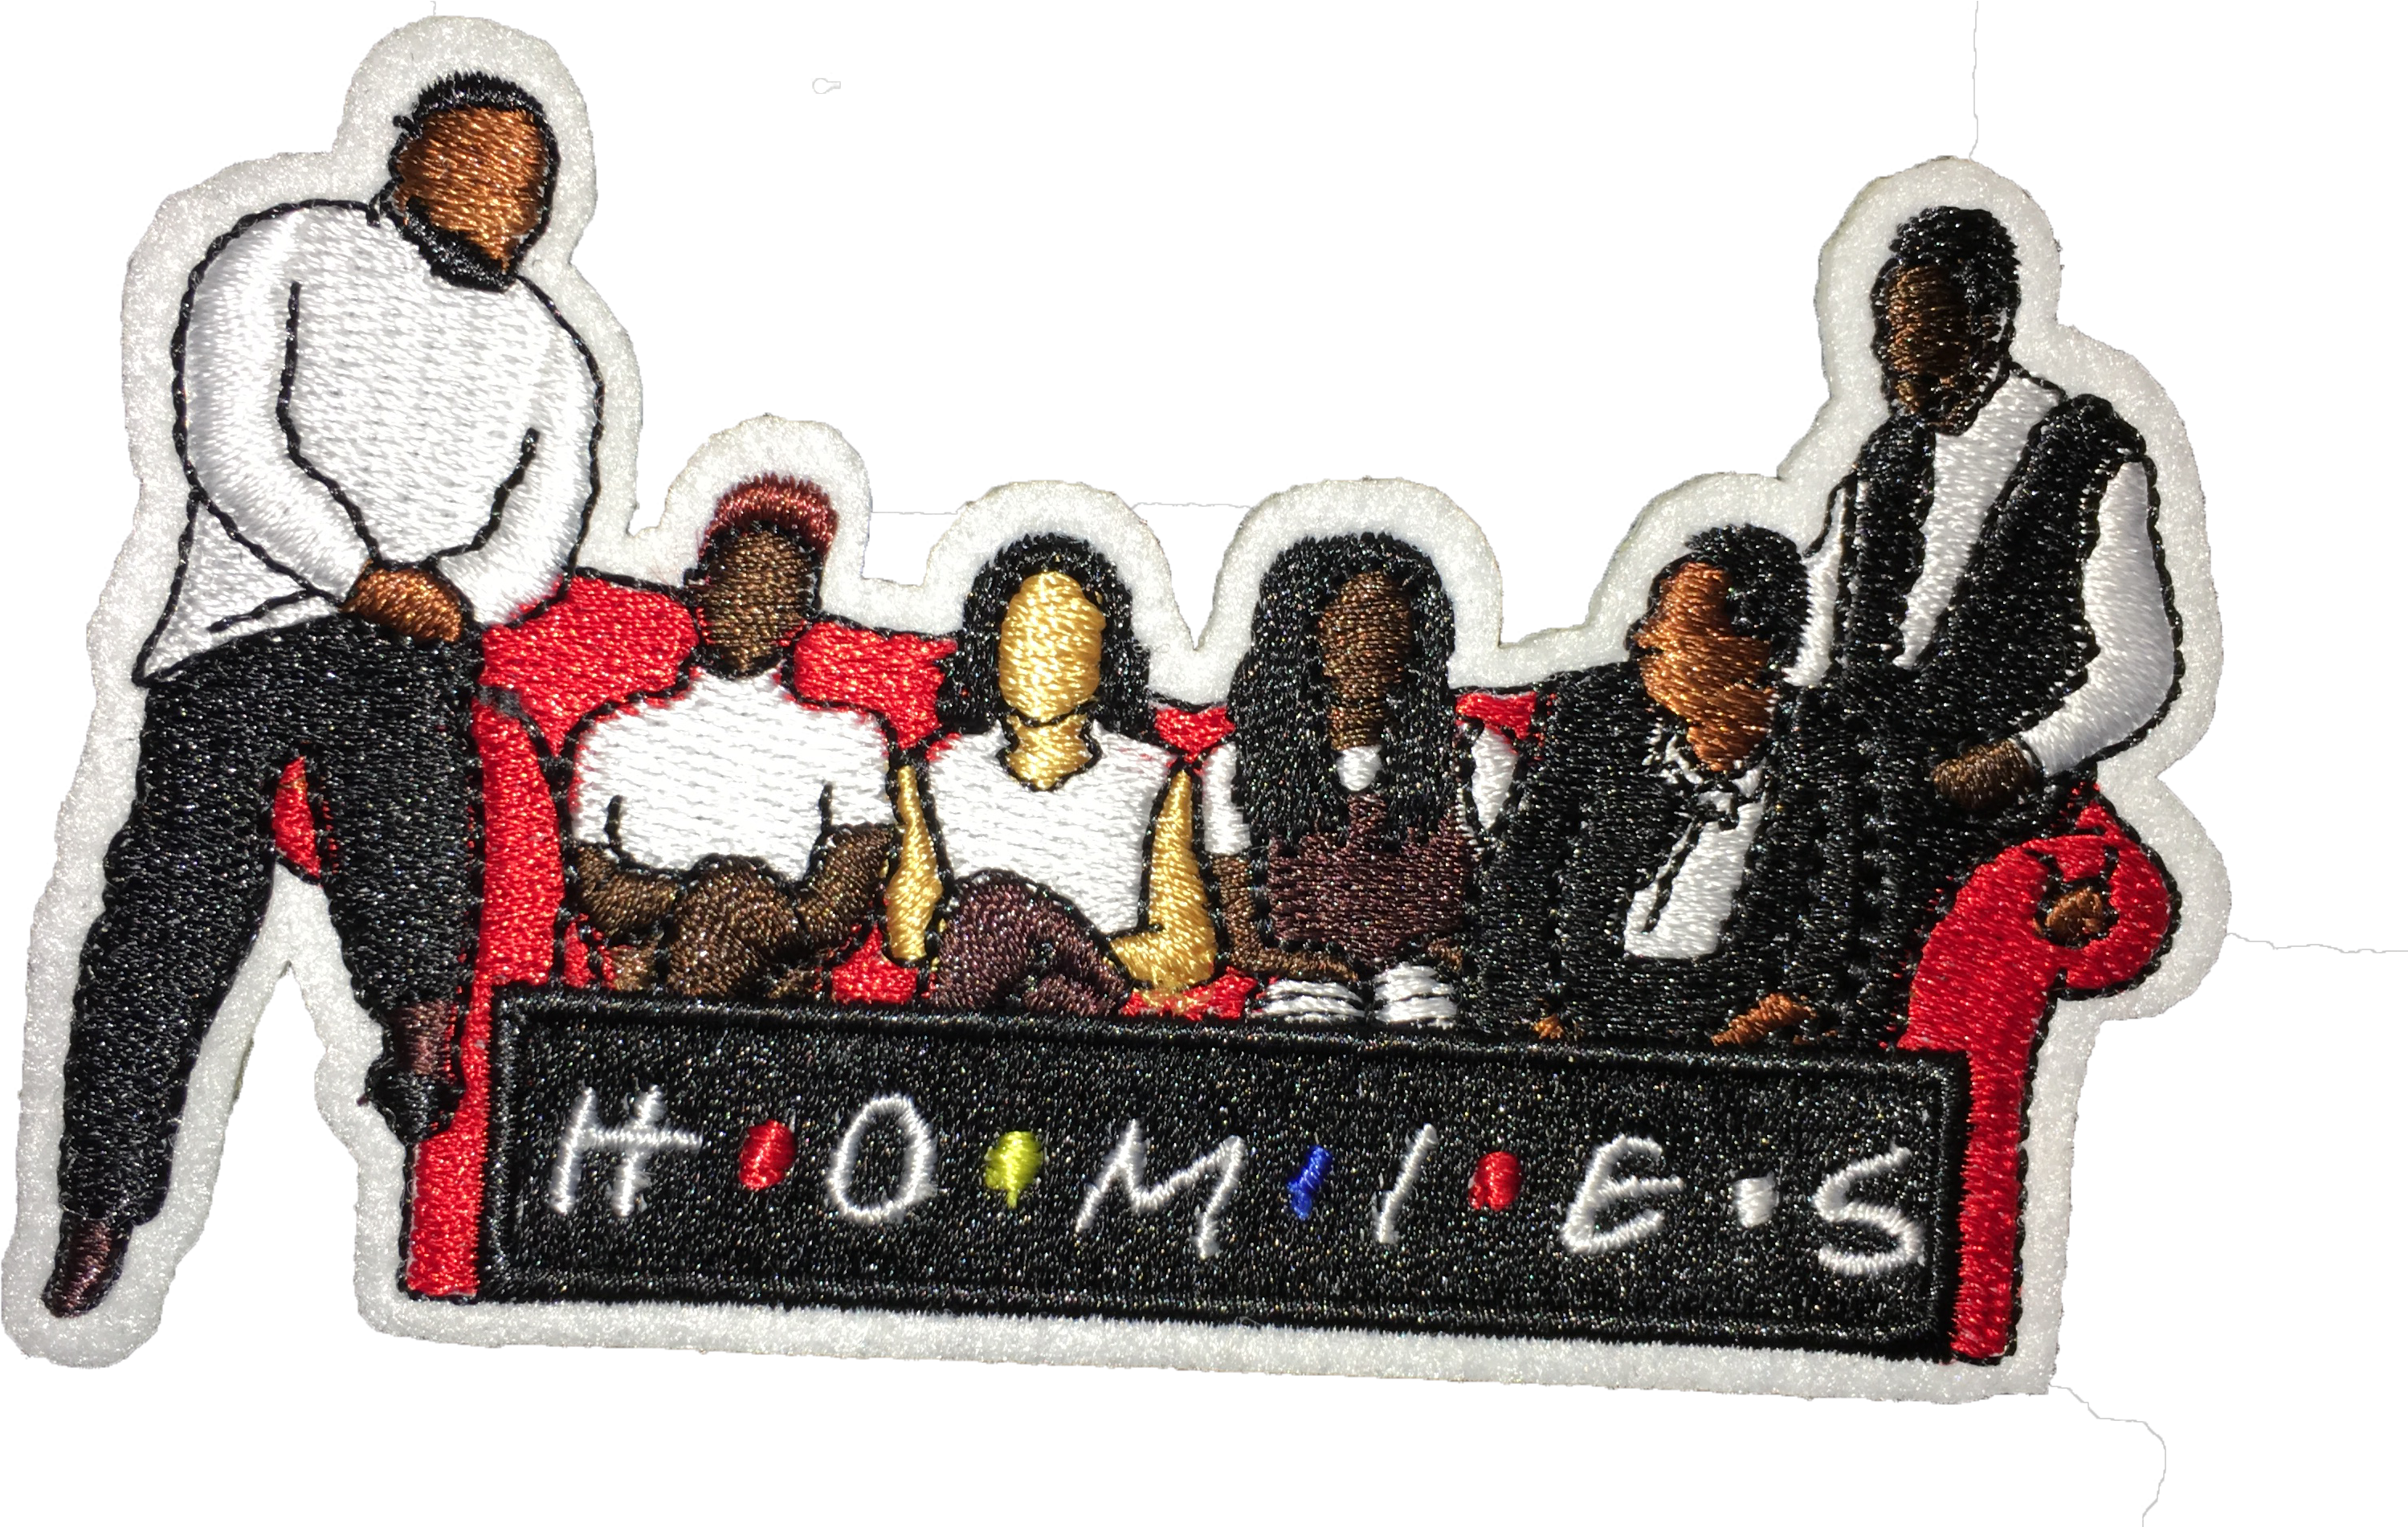 HD Home / Homies Patch.